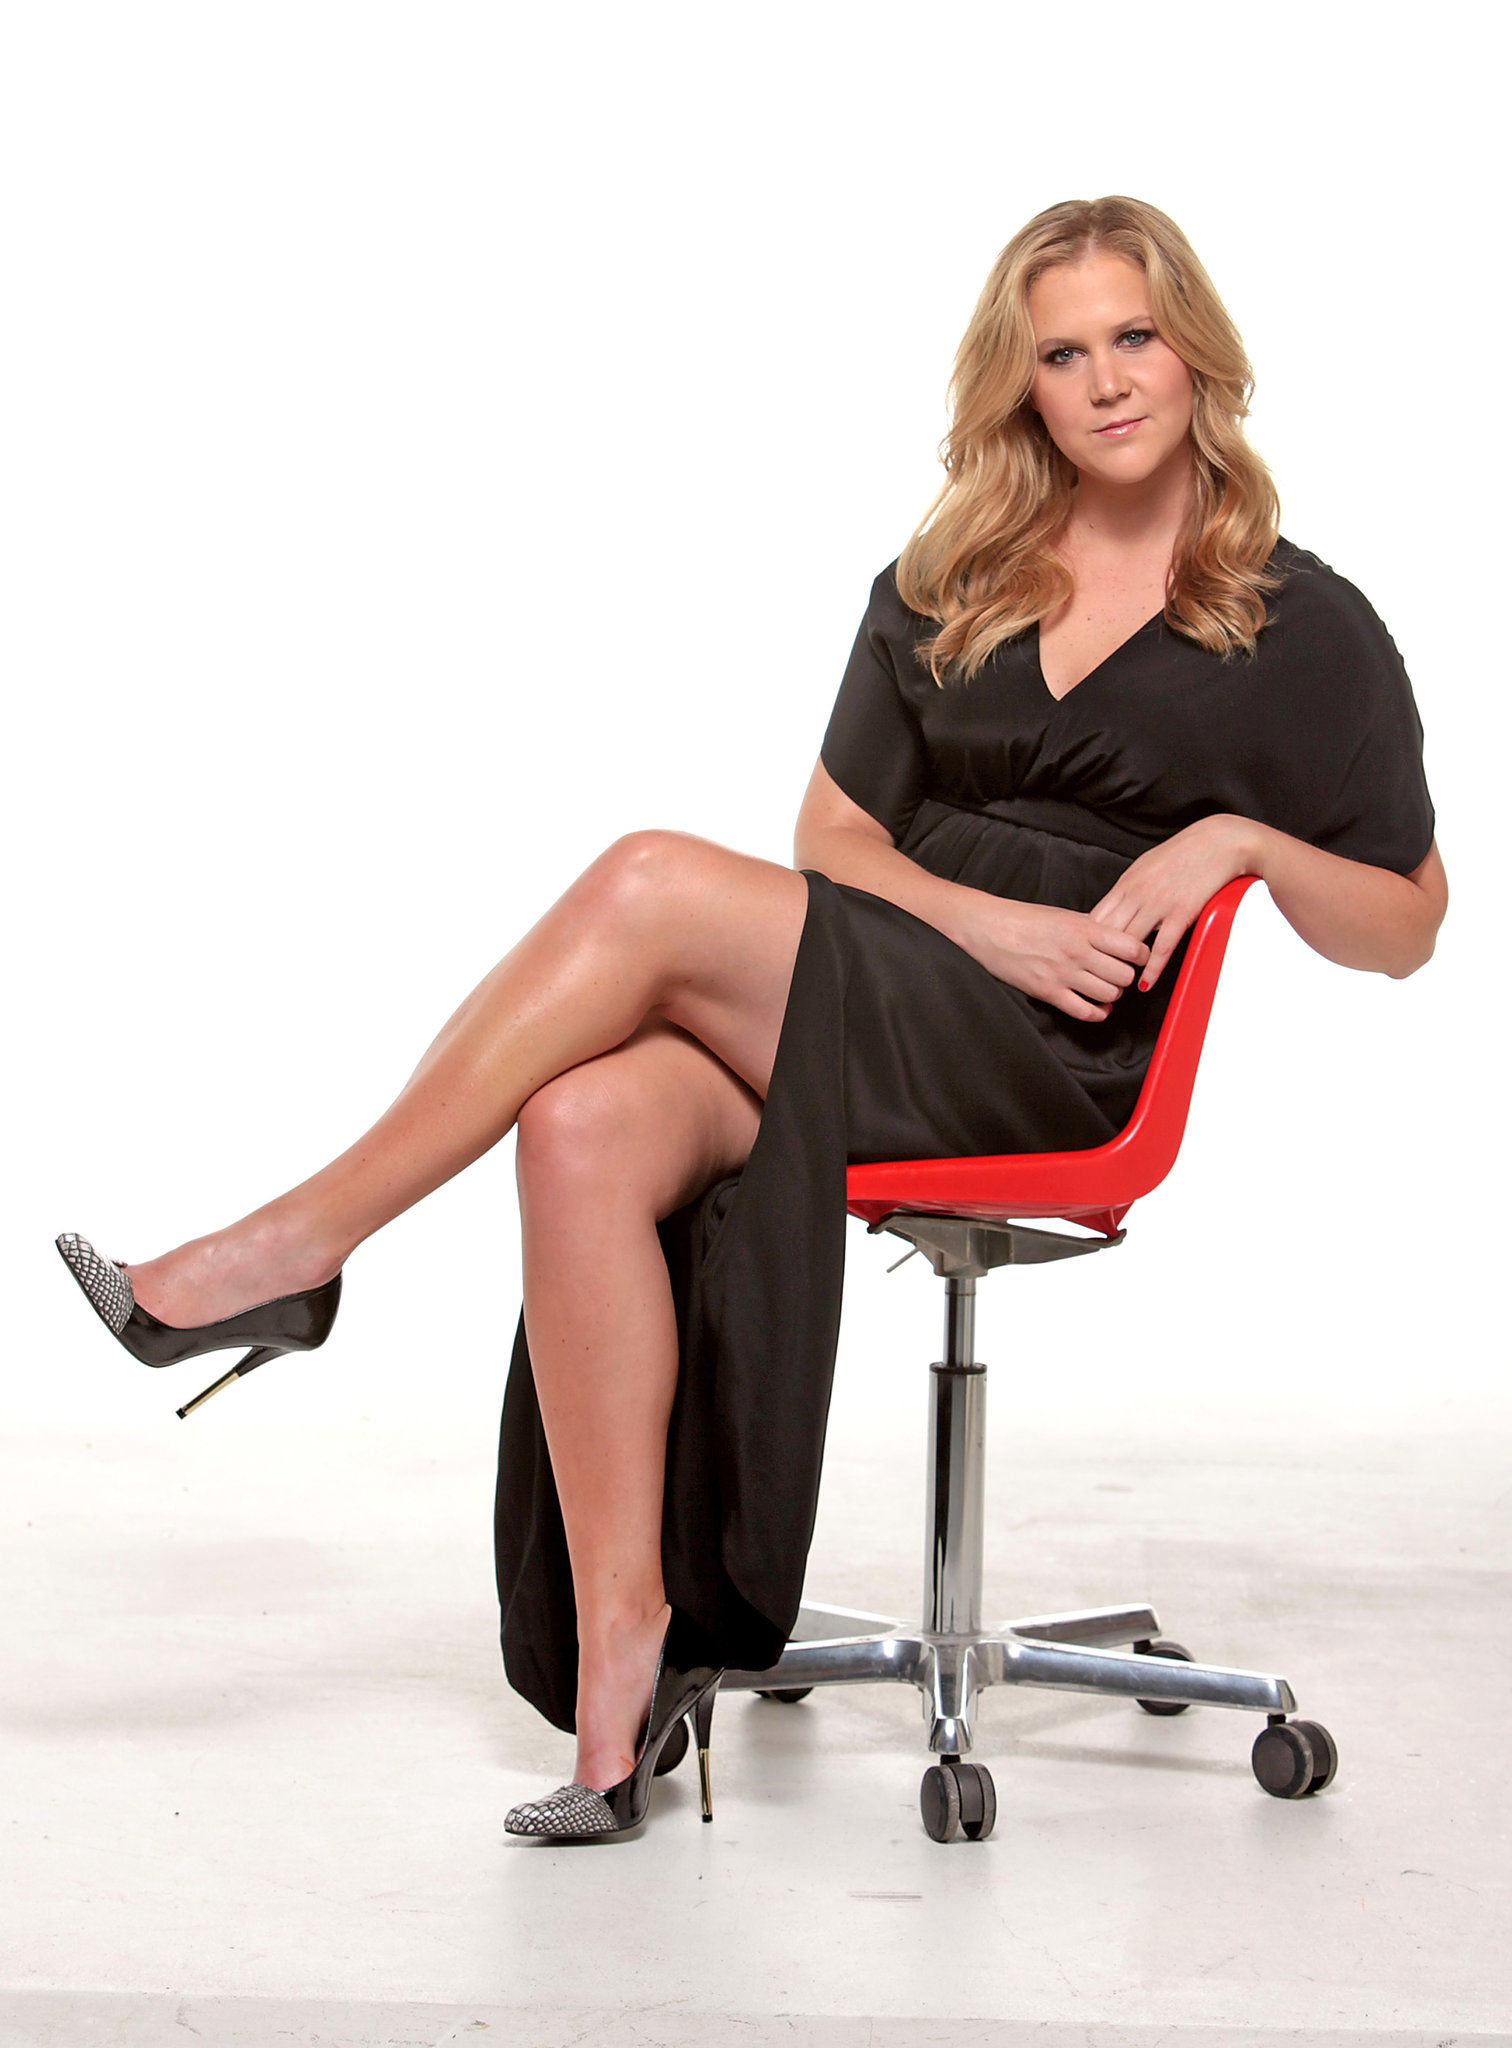 amyschumer insideamyschumer comedycentral funny laugh lol nytimes missyonmadison wcw